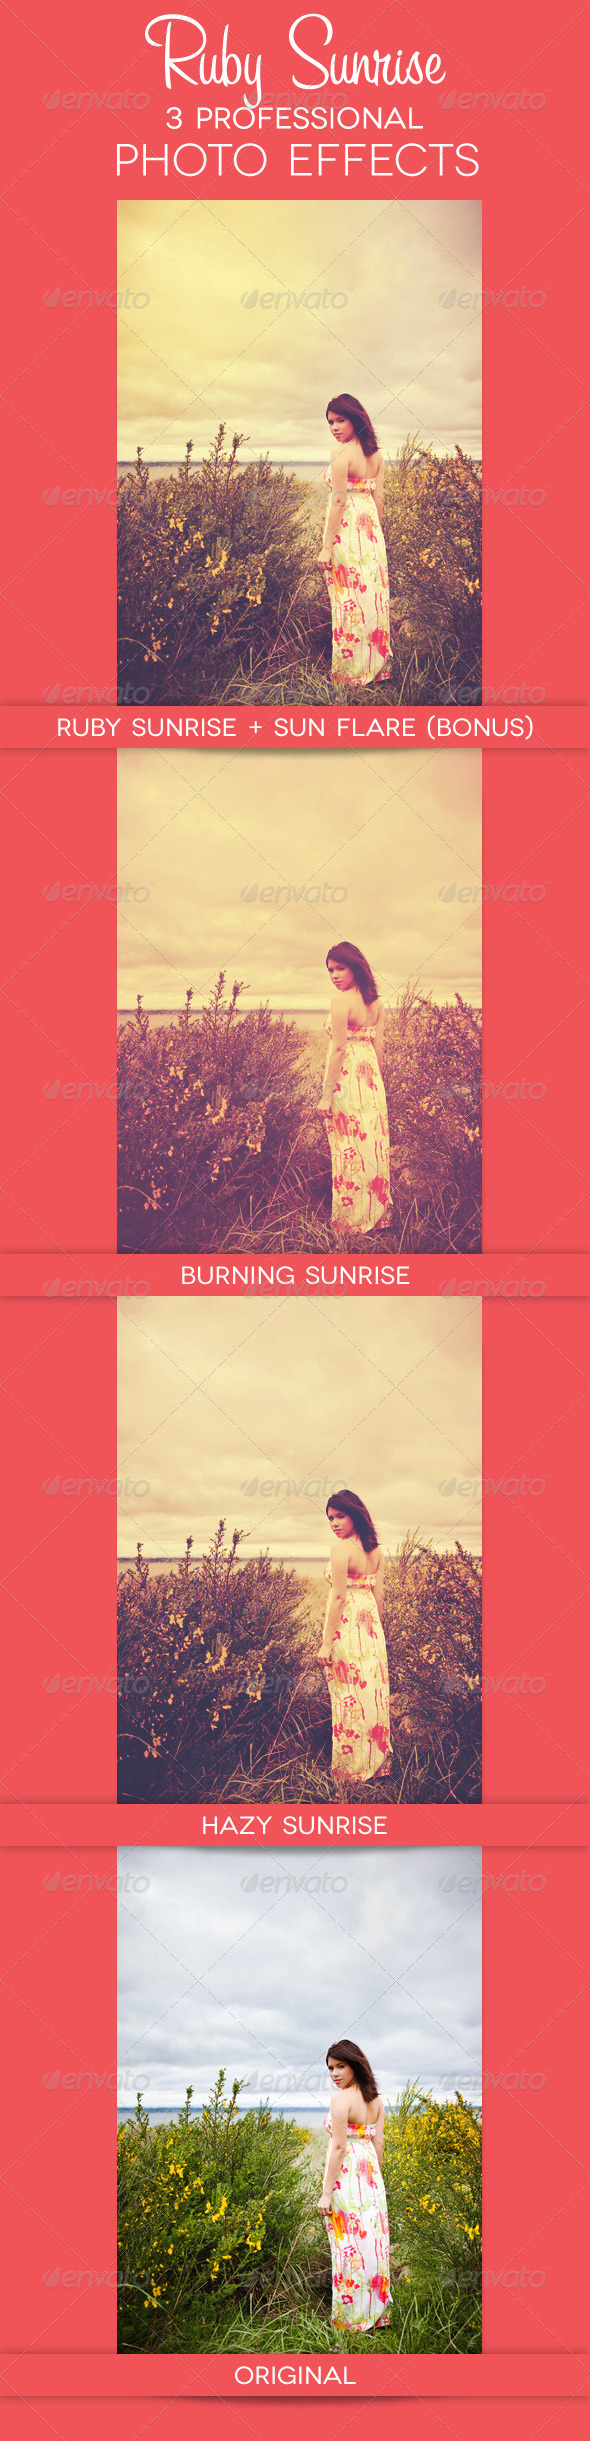 GraphicRiver Ruby Sunrise 3 Premium Photo Effects 2558338